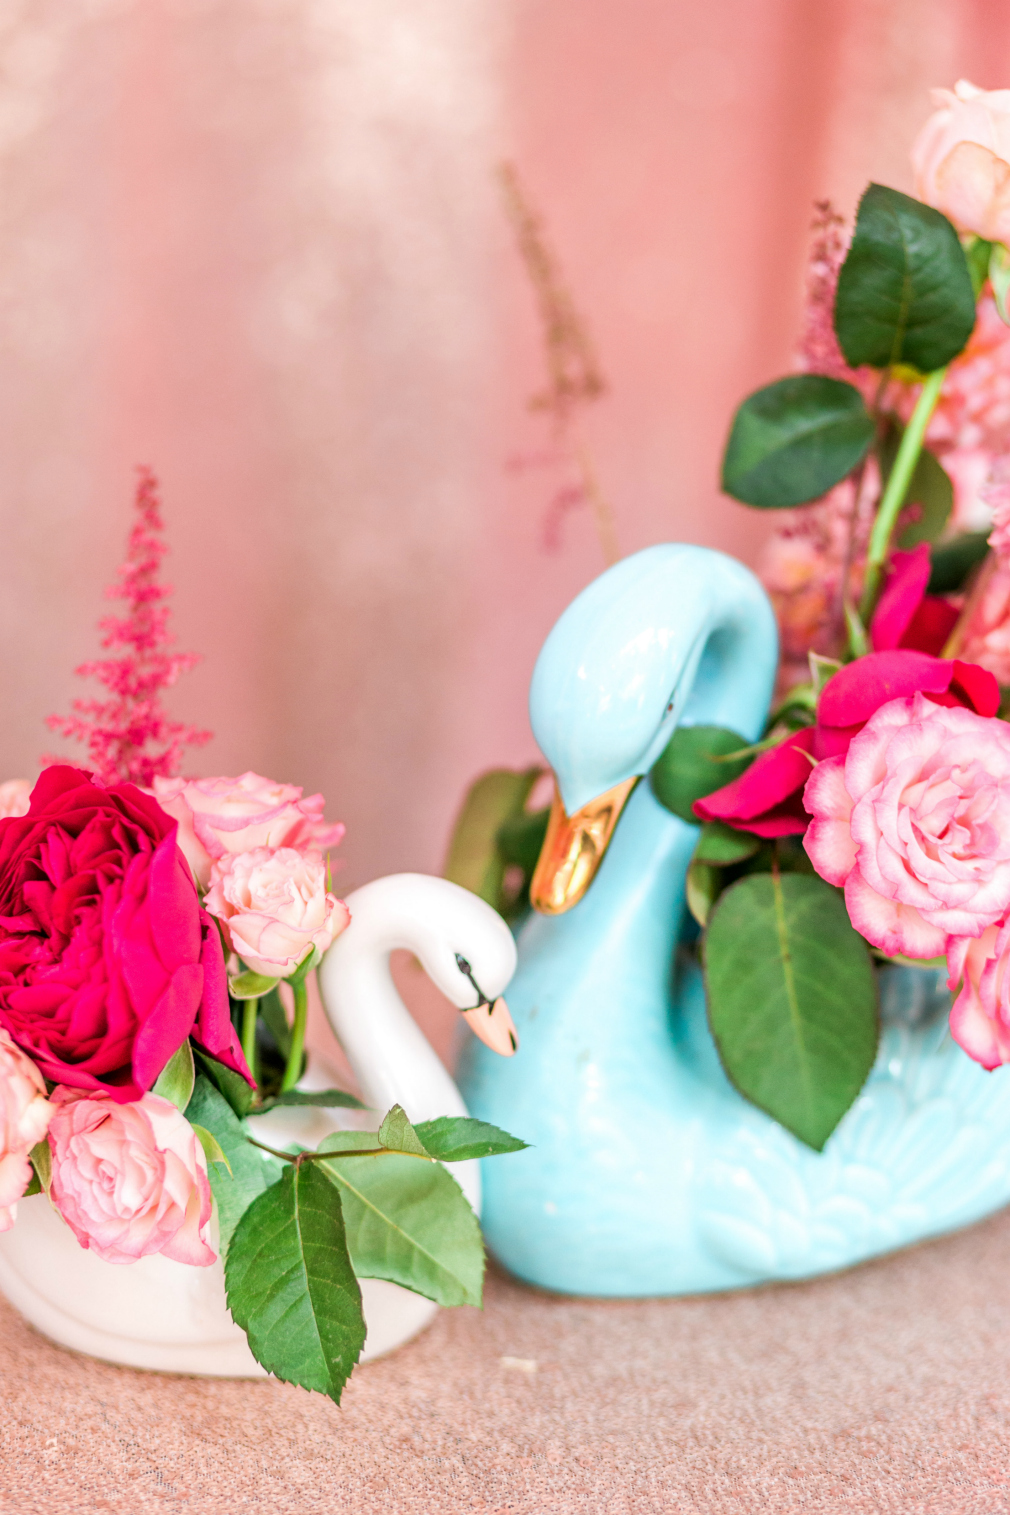 Swan floral first birthday soiree rebecca k events swans that symbolize grace and beauty filled with pretty pink flowers for a little girl whose name means flowers the decor was perfect for this little izmirmasajfo Image collections